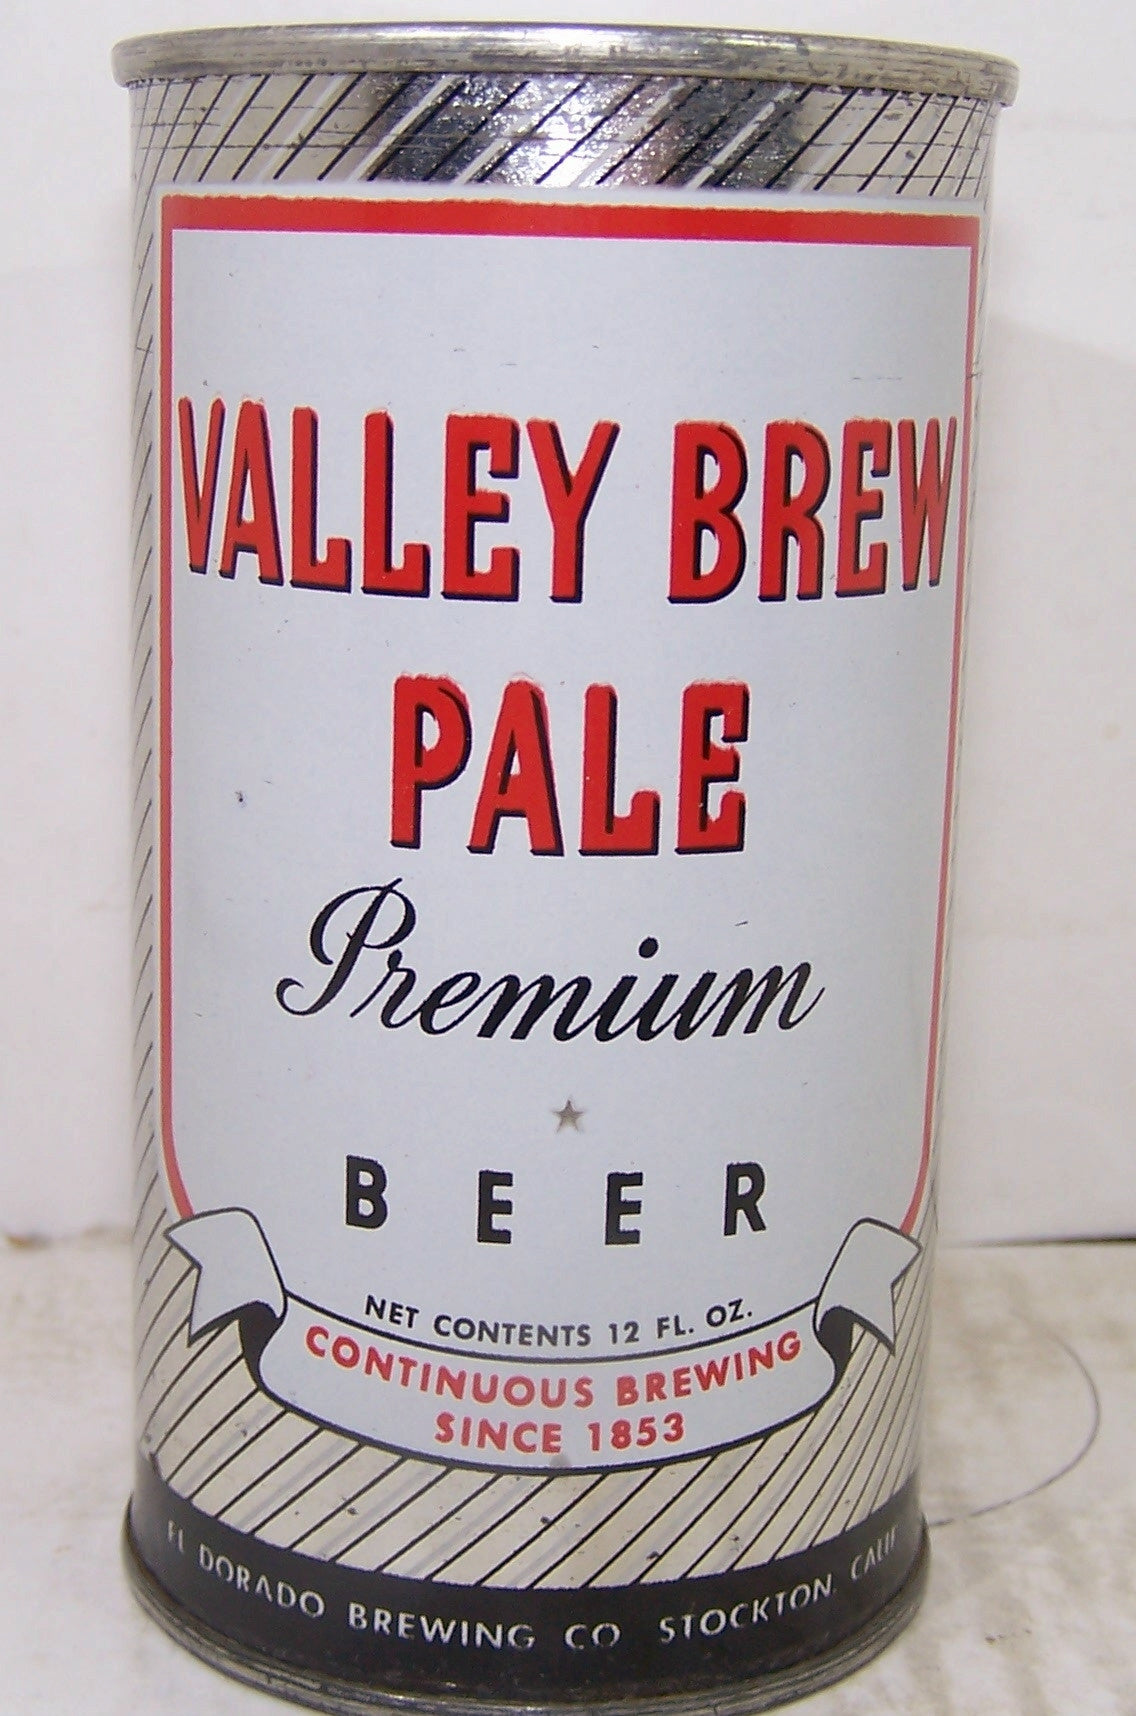 Valley Brew Pale Premium Beer, USBC 142-30, Grade 1 Sold 2/3/15